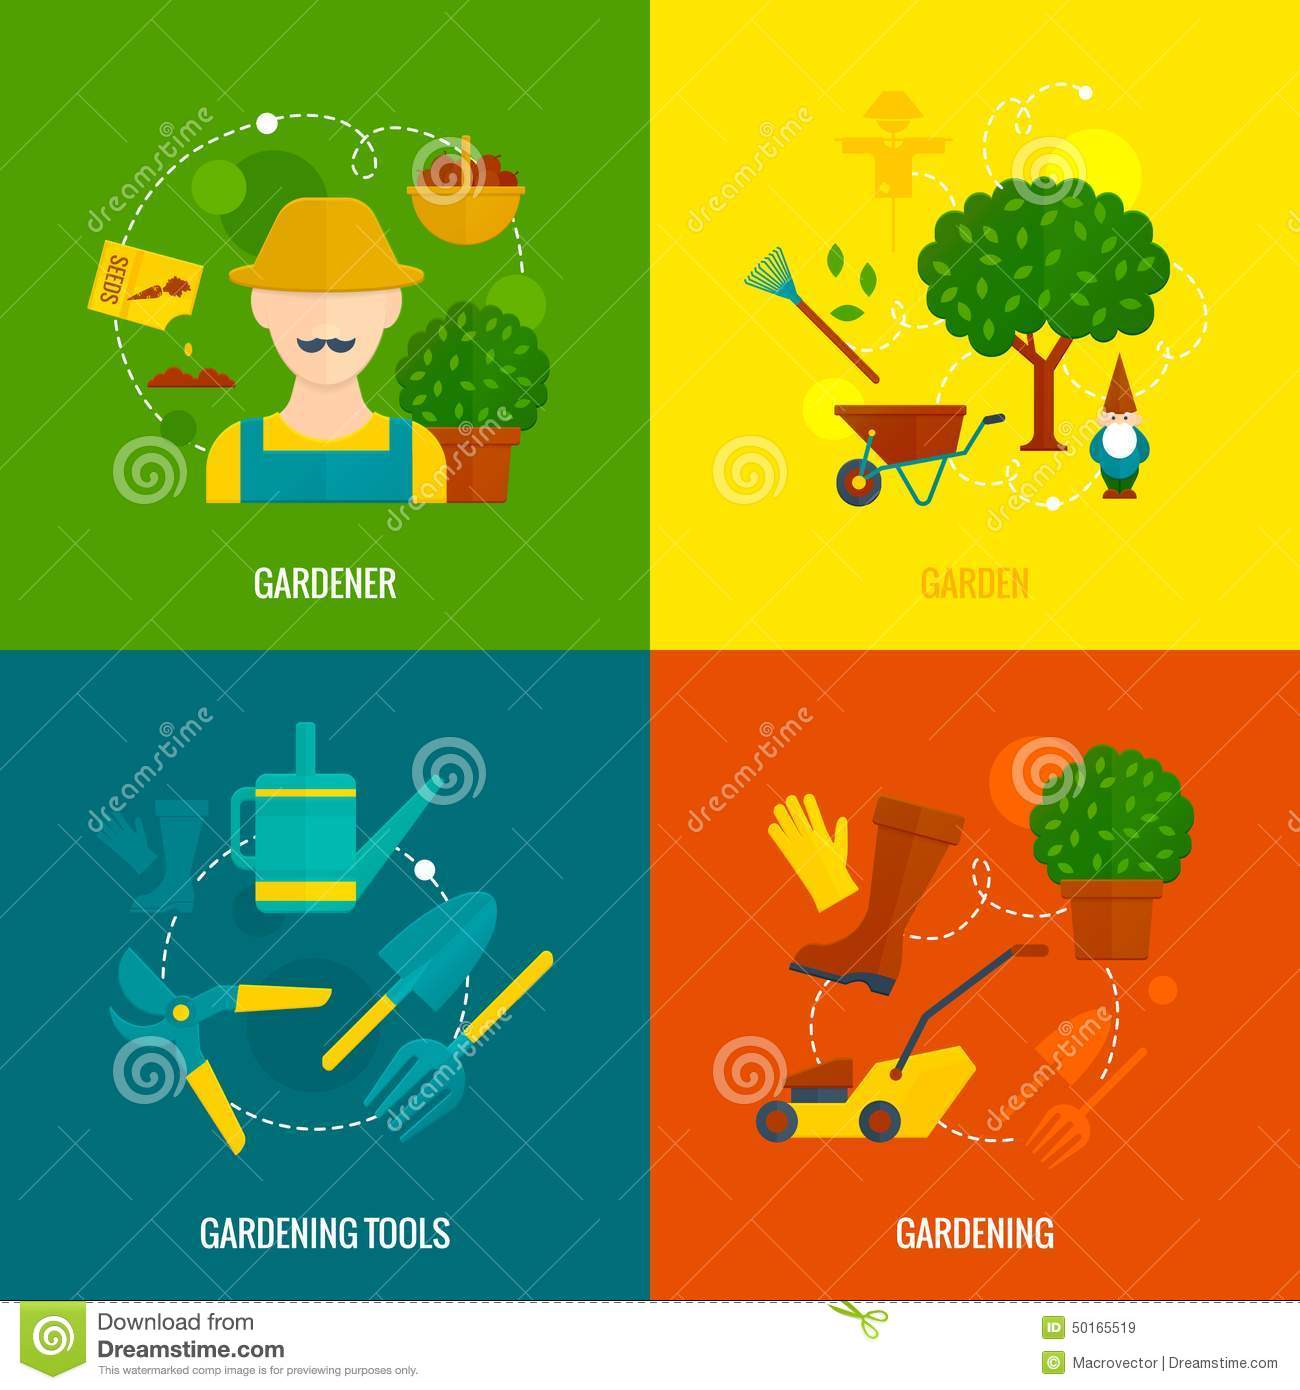 Vegetable garden graphic - Royalty Free Vector